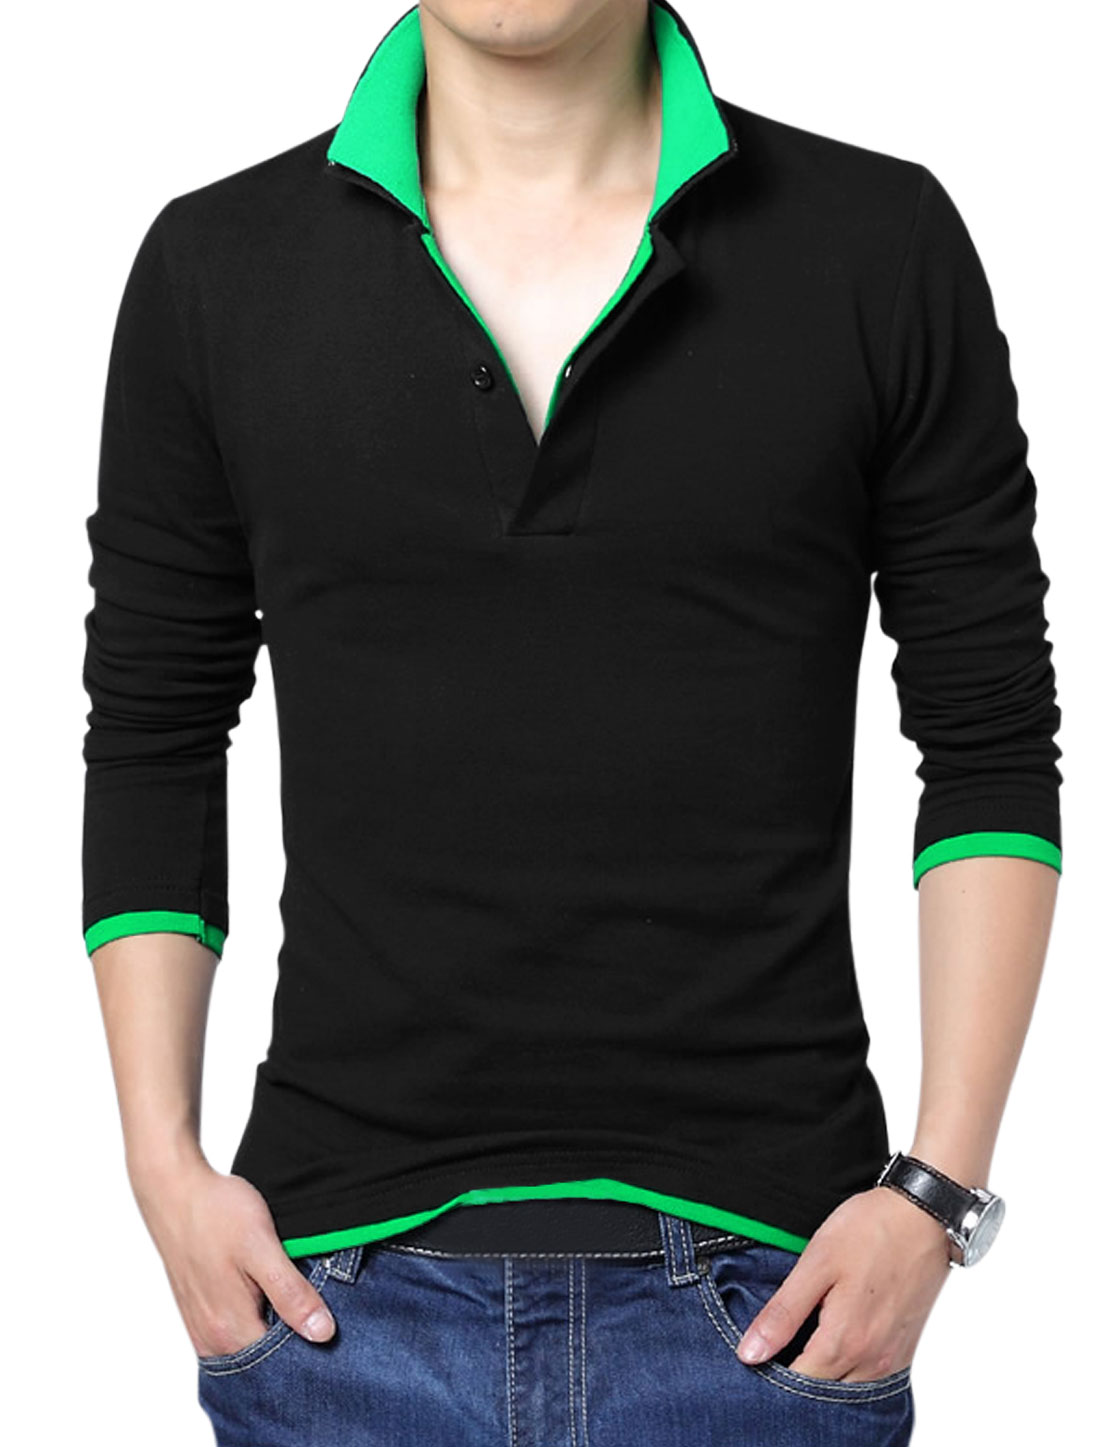 Men Layered Point Collar Long Sleeve Leisure Polo Shirt Black Green M